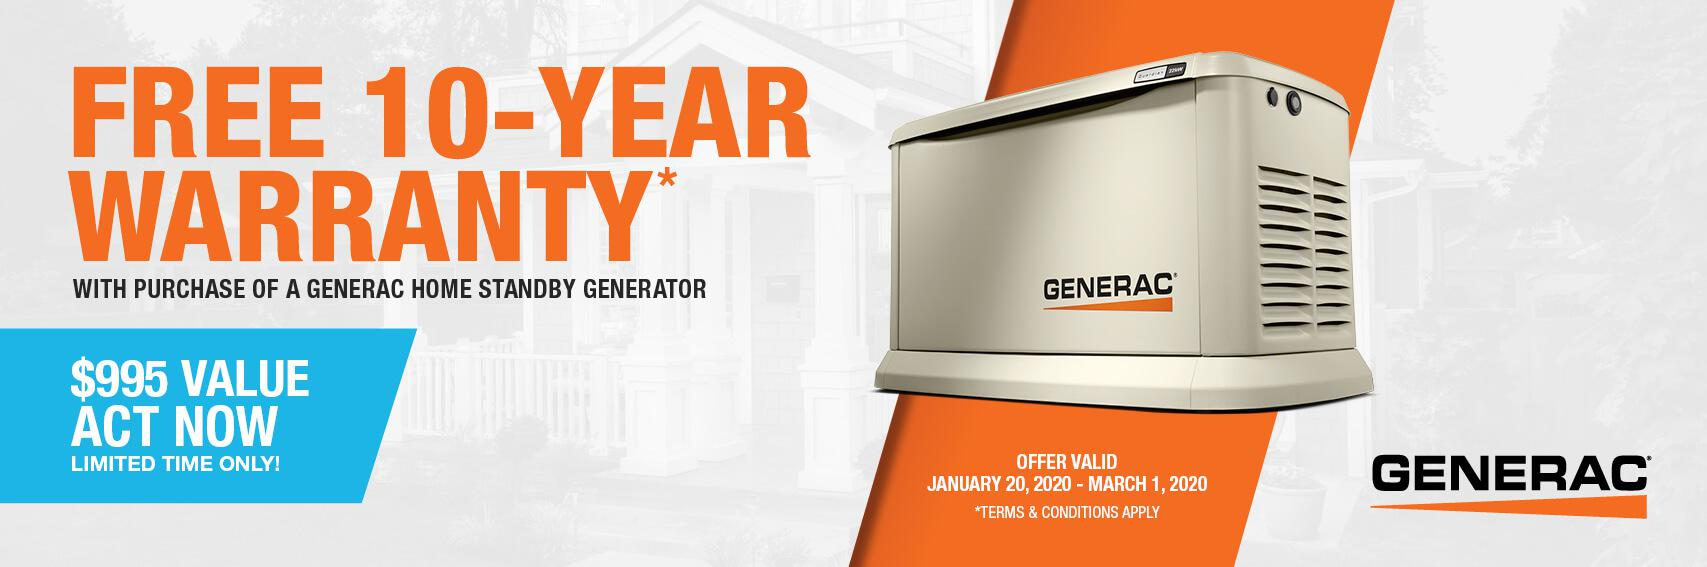 Homestandby Generator Deal | Warranty Offer | Generac Dealer | Bethel Park, PA